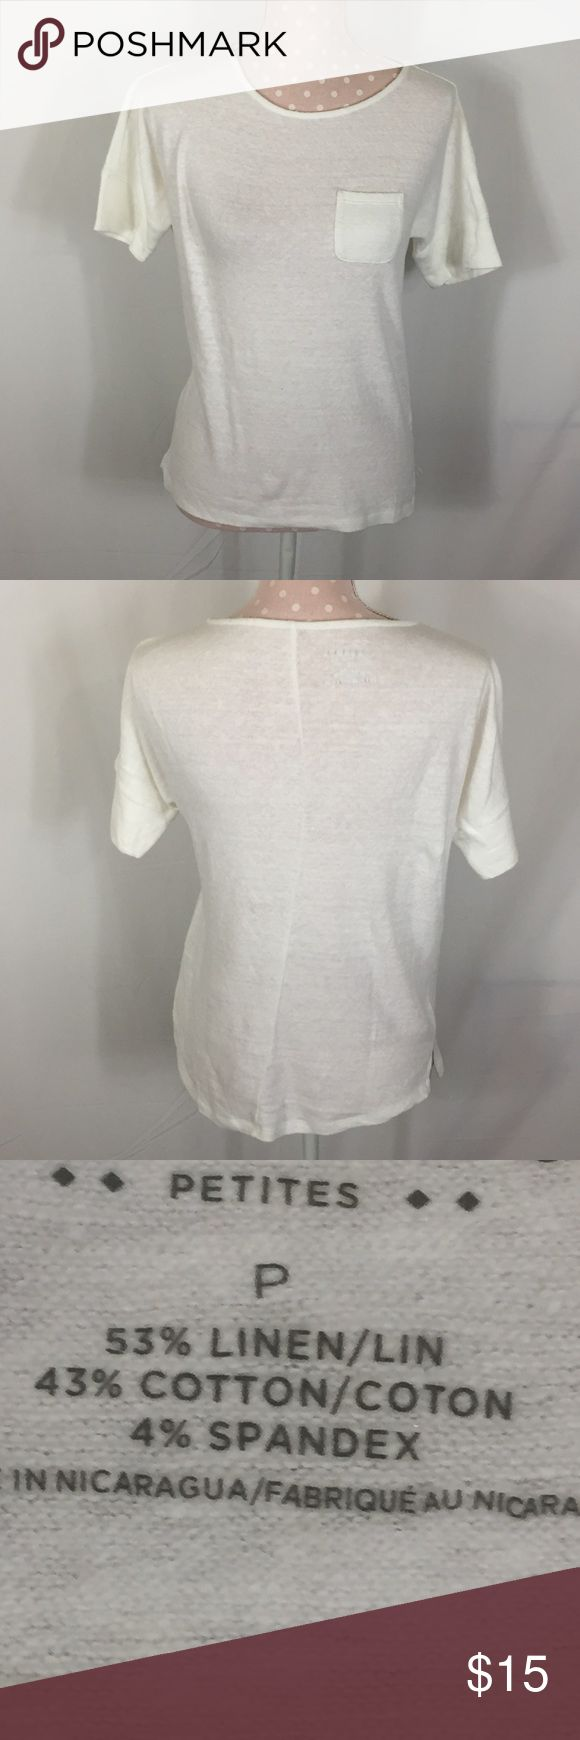 Quality Linen Petite Tee NWOT Airy Tee Size is listed only as P, so please see pictured measurements. Large cuff on the sleeves and a seam down the center back. Small side slits Please see pictures for materials, care and measurements. B1 Tops Tees - Short Sleeve